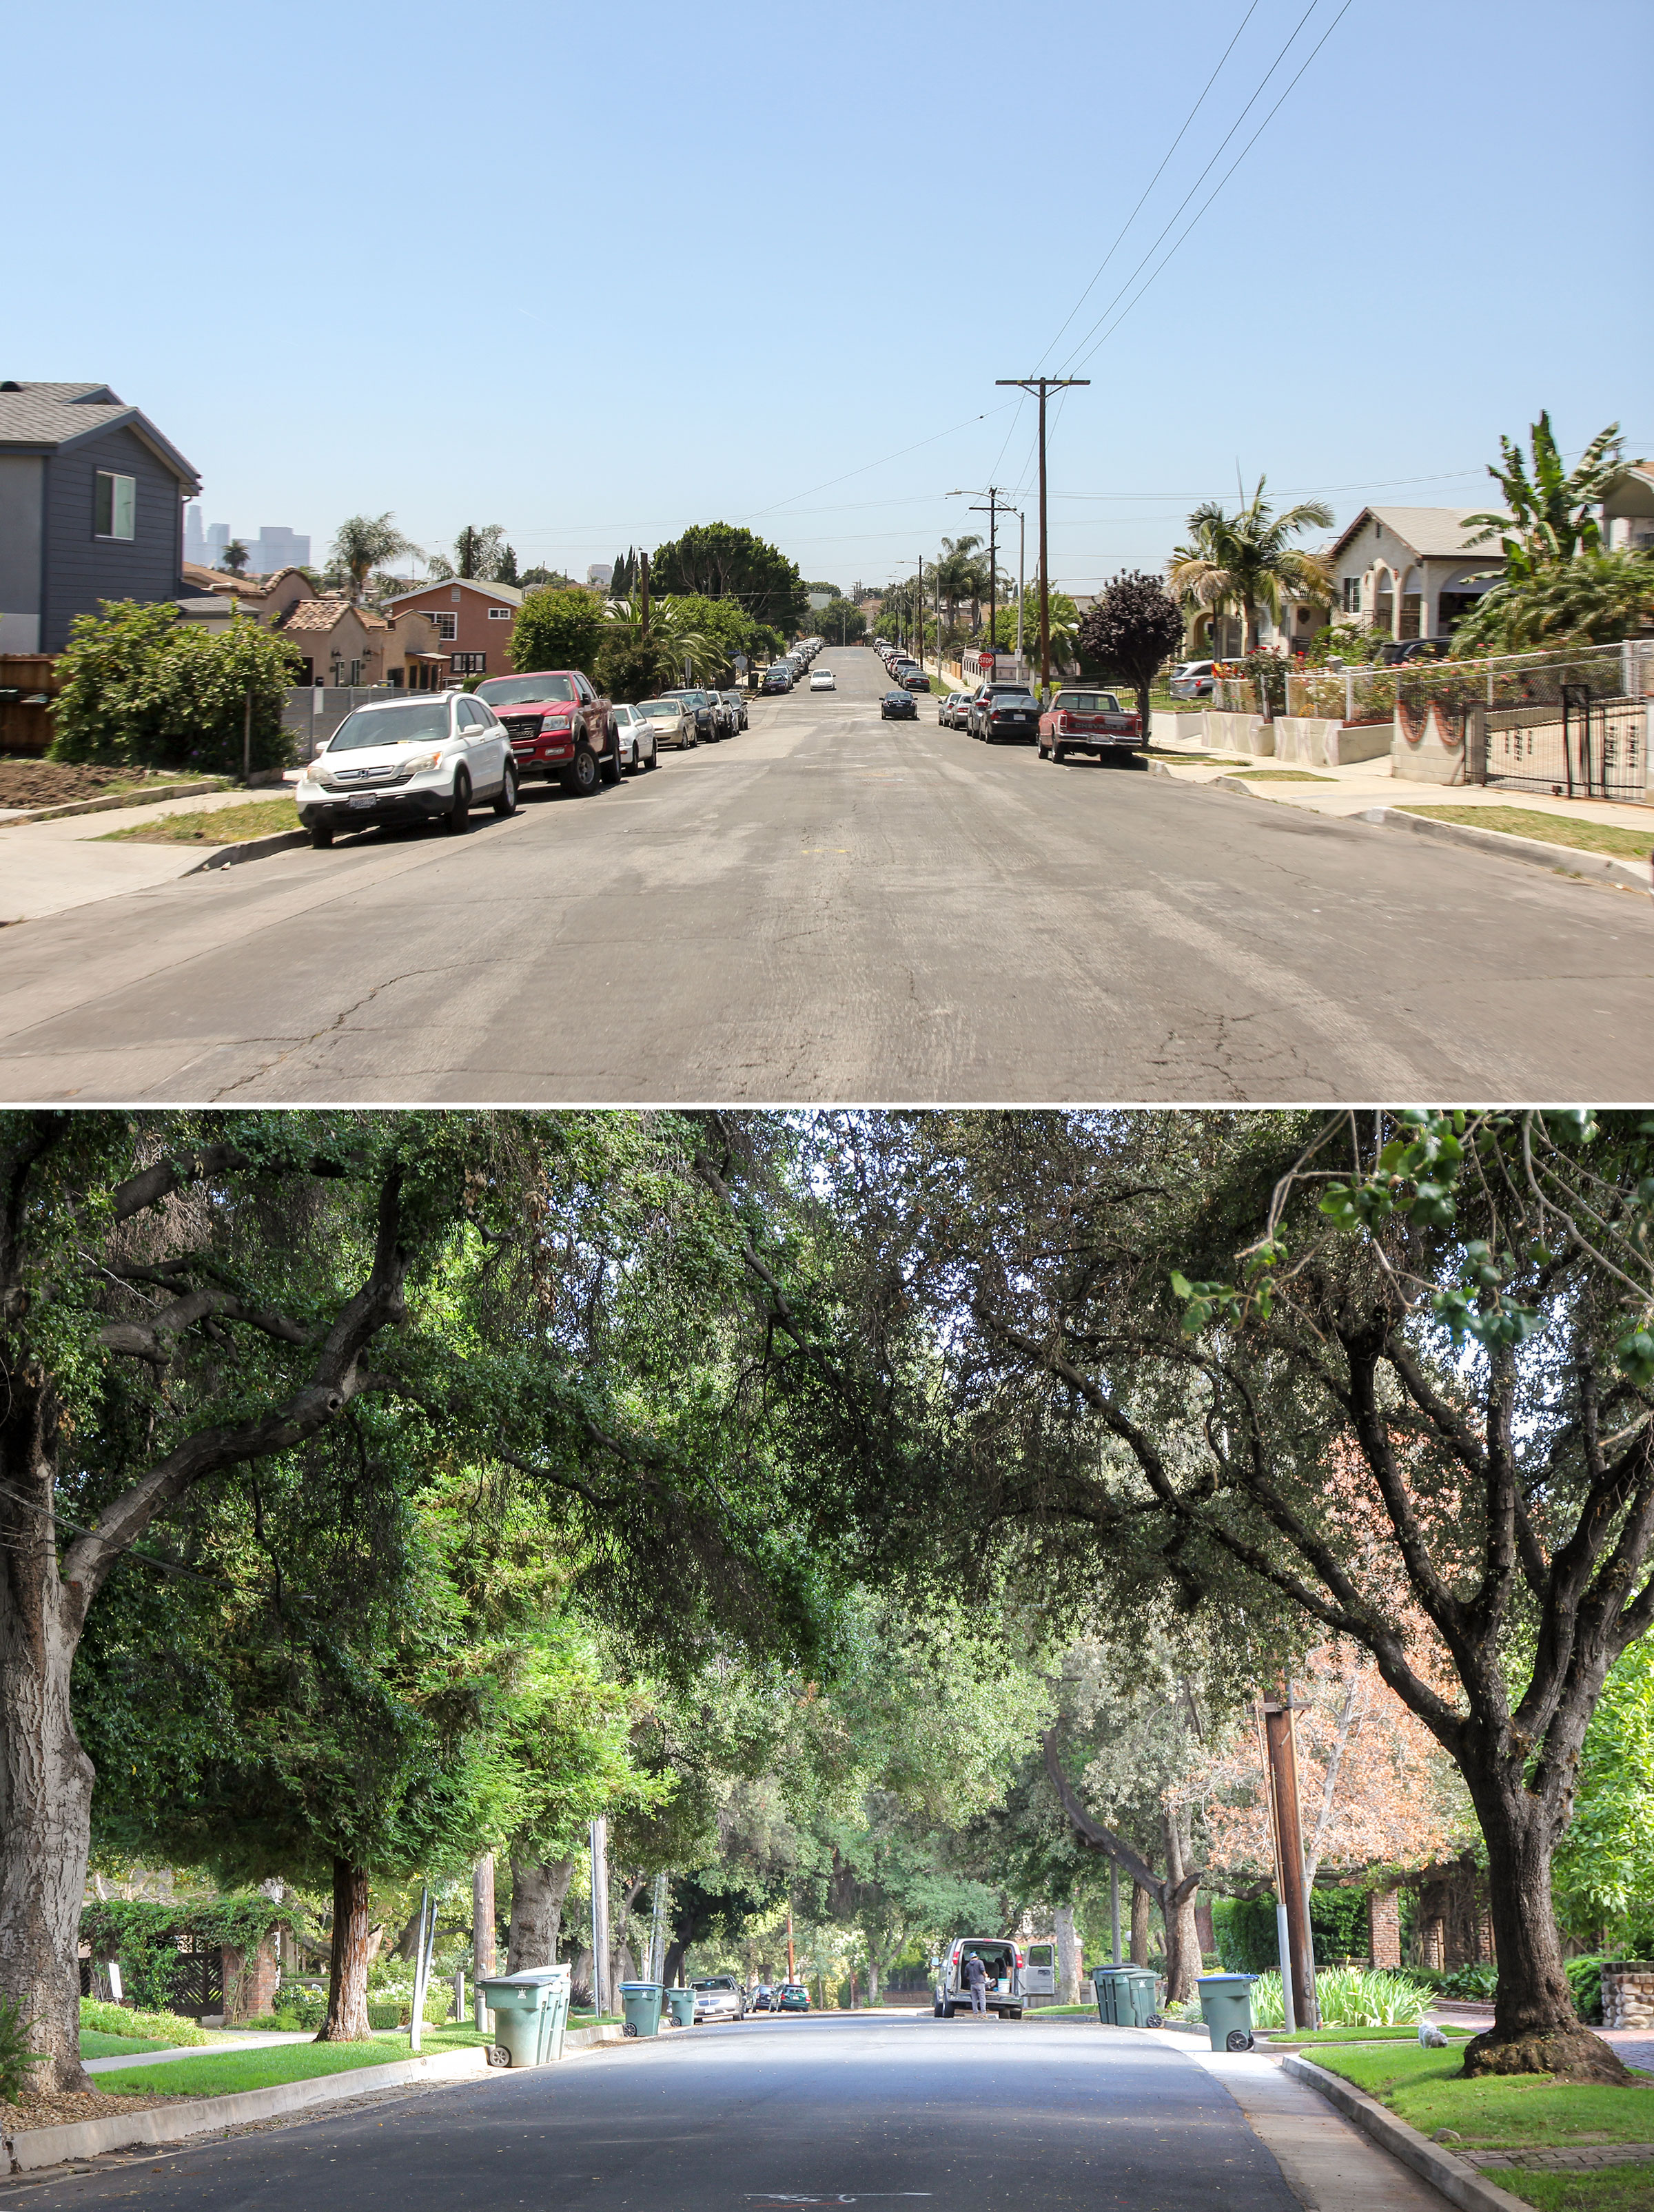 Low-income neighborhood (top) in contrast to a high-income neighborhood (bottom) in Los Angeles County. Photos: Eric Wood